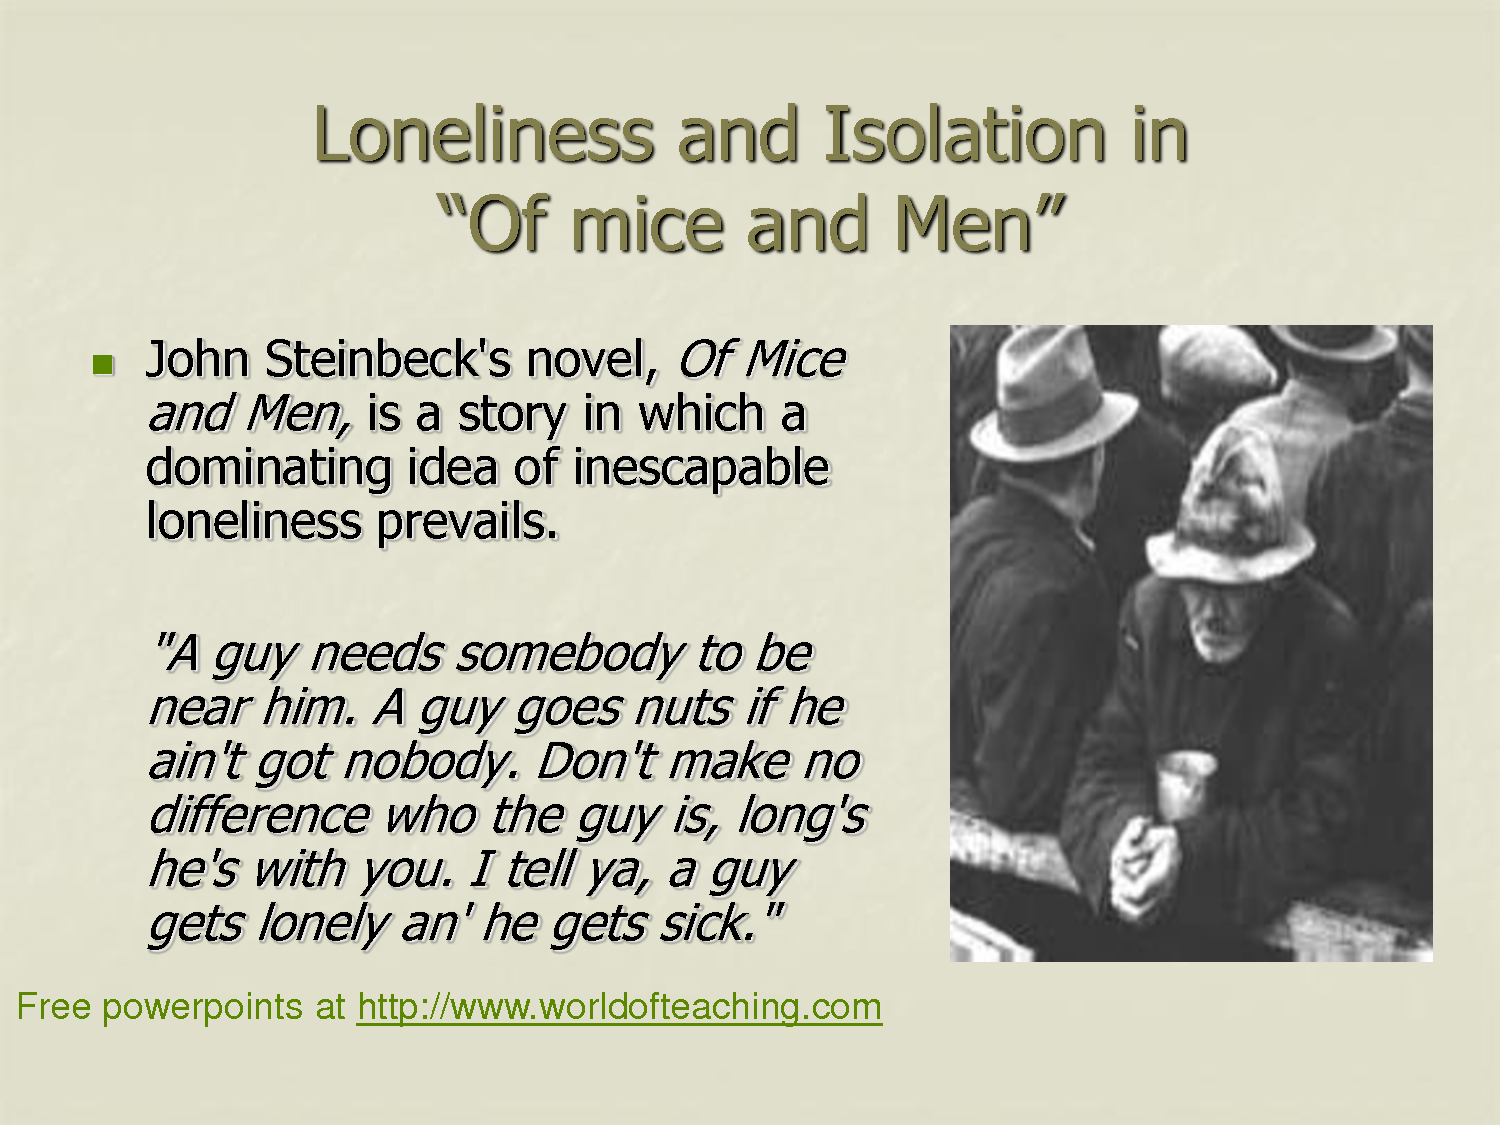 of mice and men essay conclusion loneliness Loneliness: of mice and men- steinbecks during the great depression (1930s-1940s) in america, where nobody had enough.